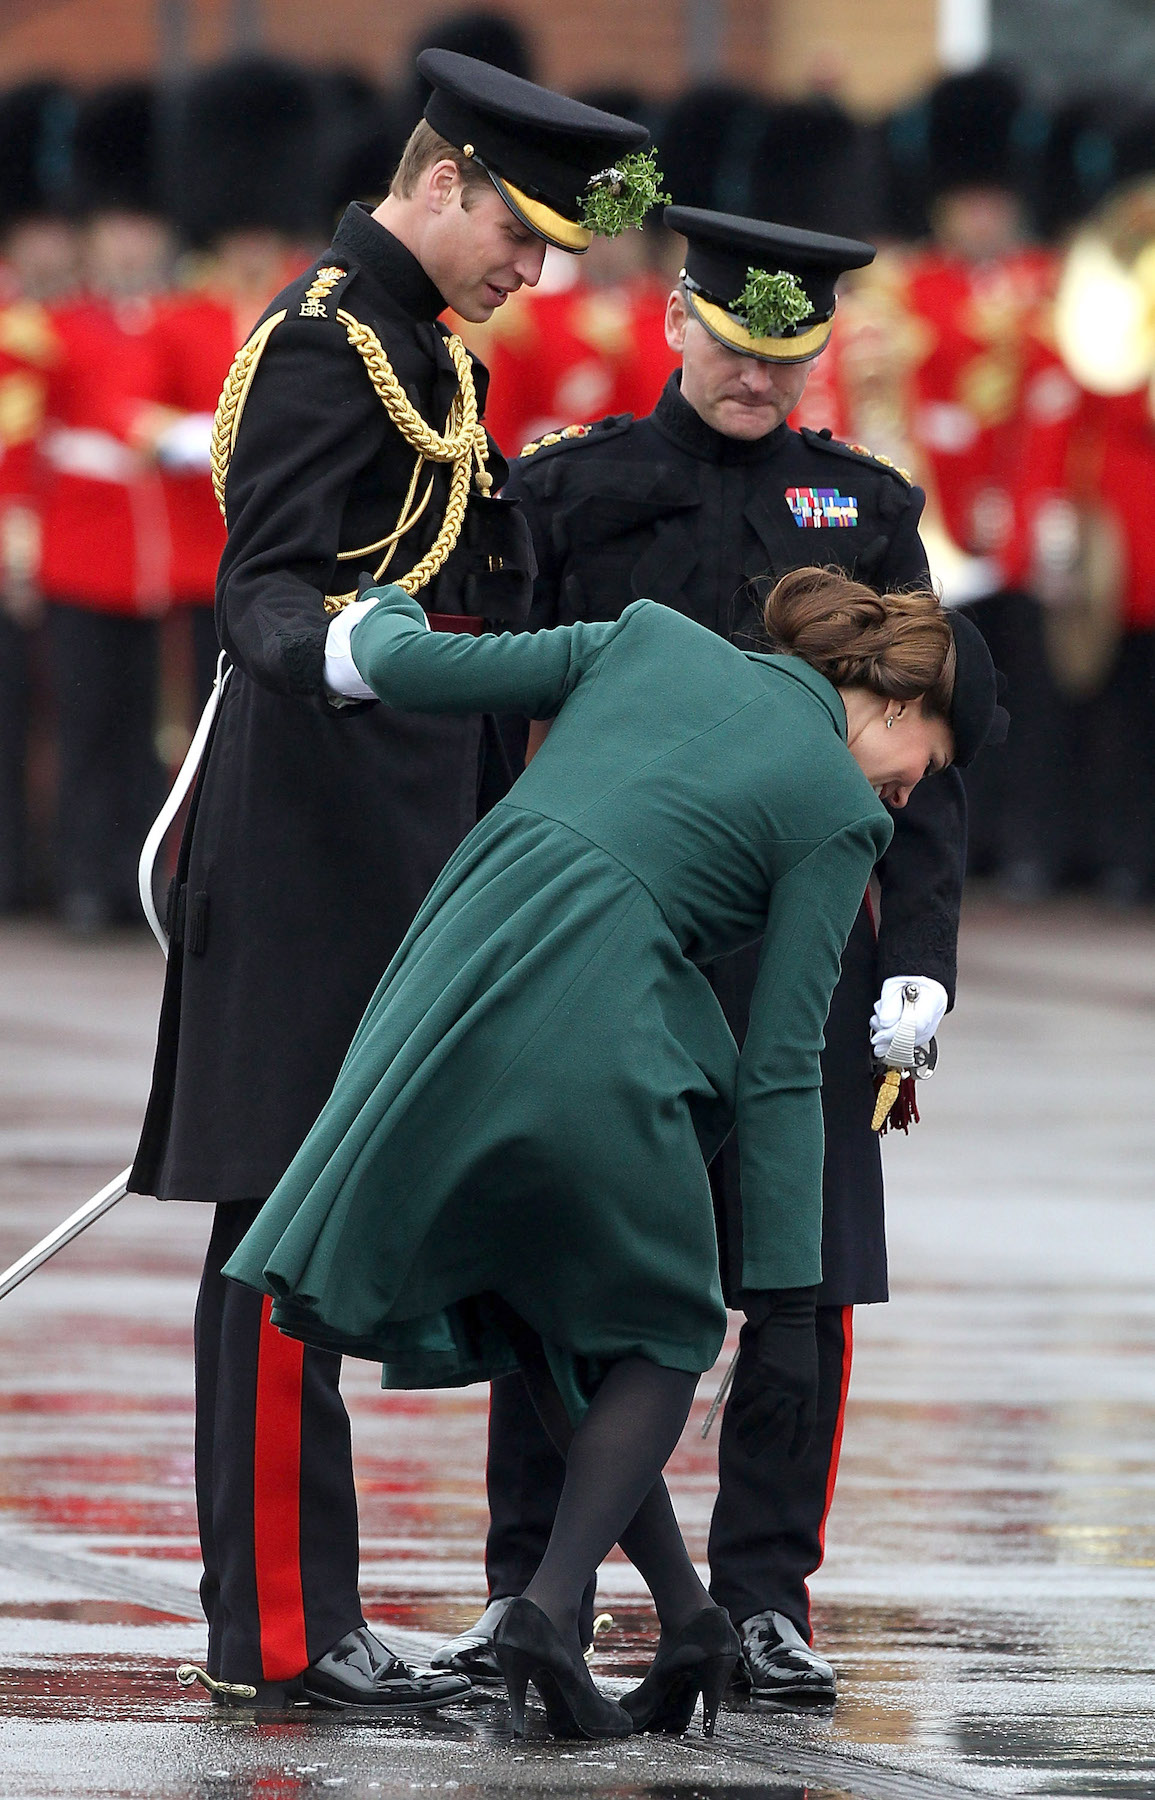 Kate Middleton at St. Patrick's Day Parade